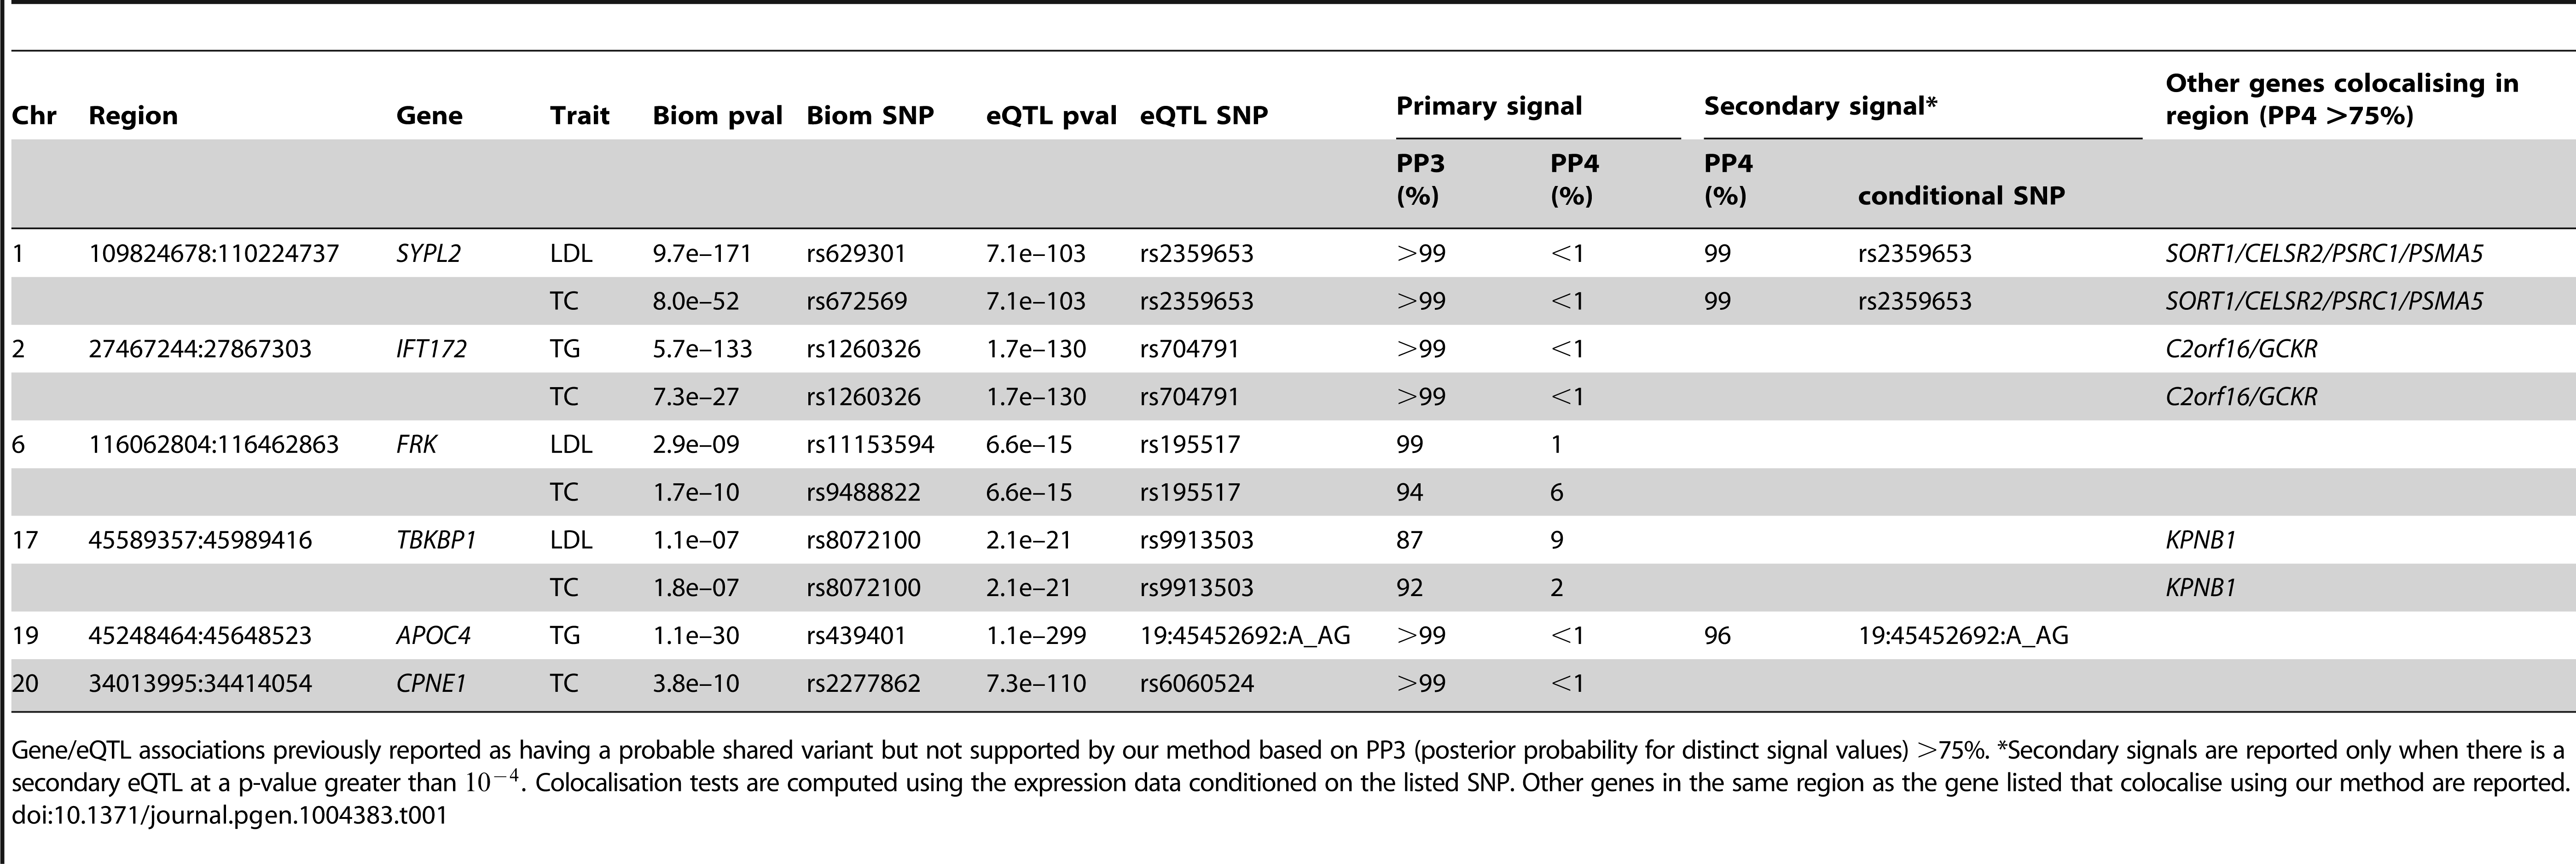 Loci previously reported to colocalise with liver eQTL, but not supported by our analysis.